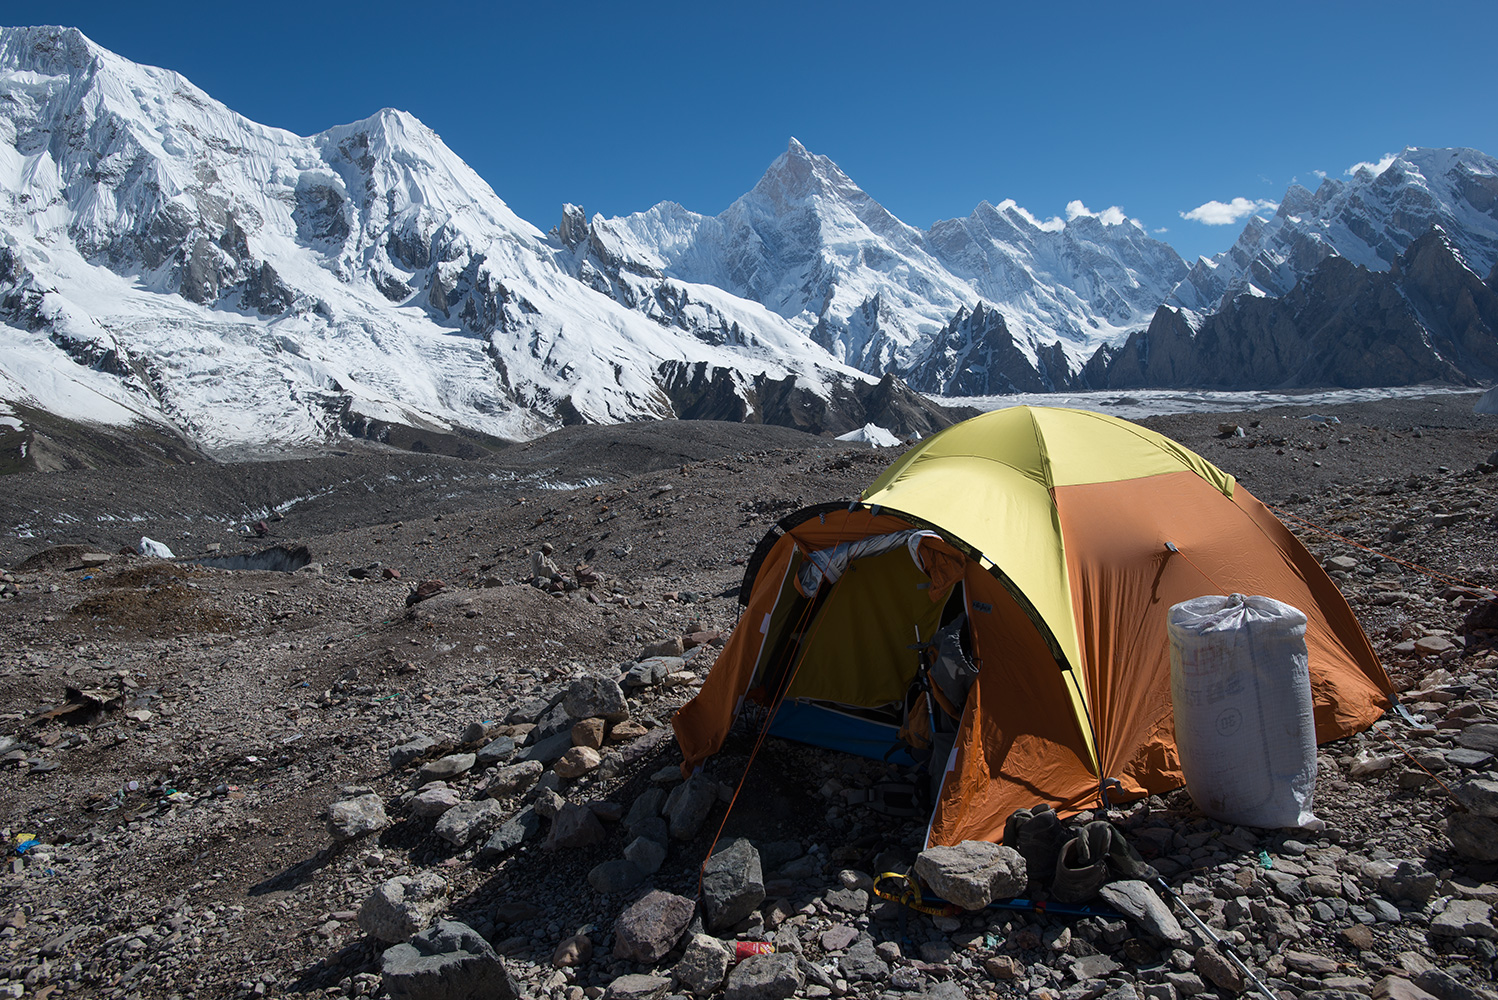 On the Baltoro glacier, with Masherbrum etc beyond